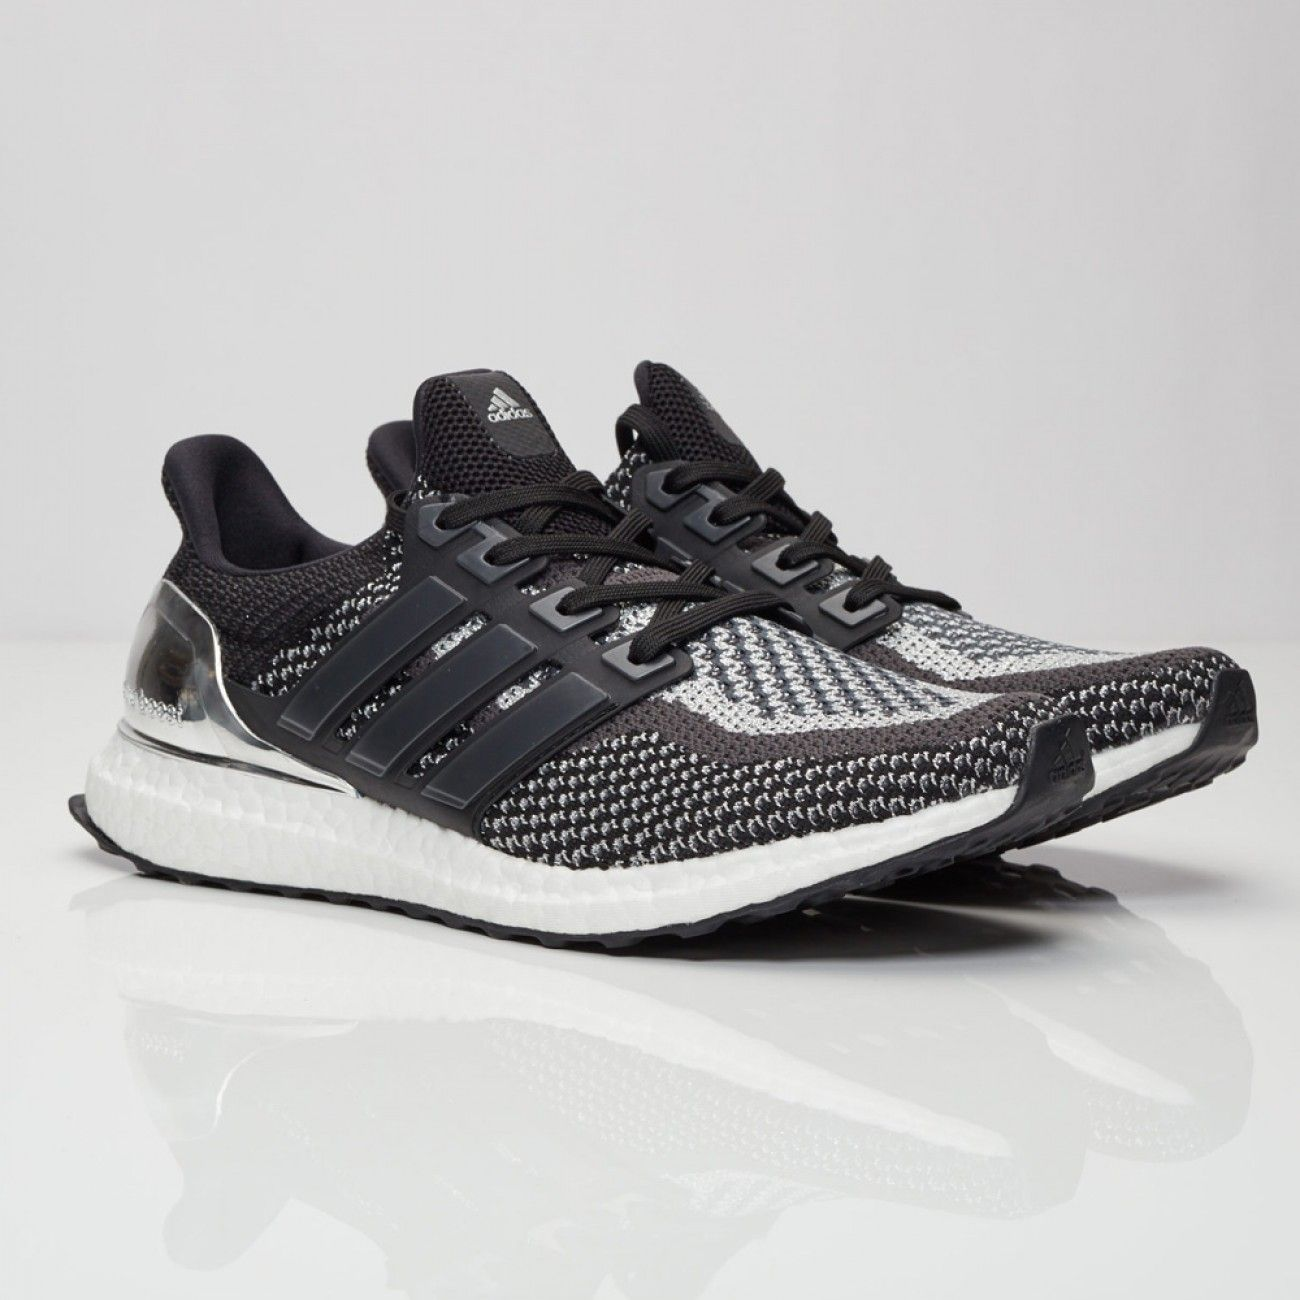 59ea8fa18f65f0 2018 Sale Adidas Ultra Boost LTD Olympic Silver Shoes Outlet ...